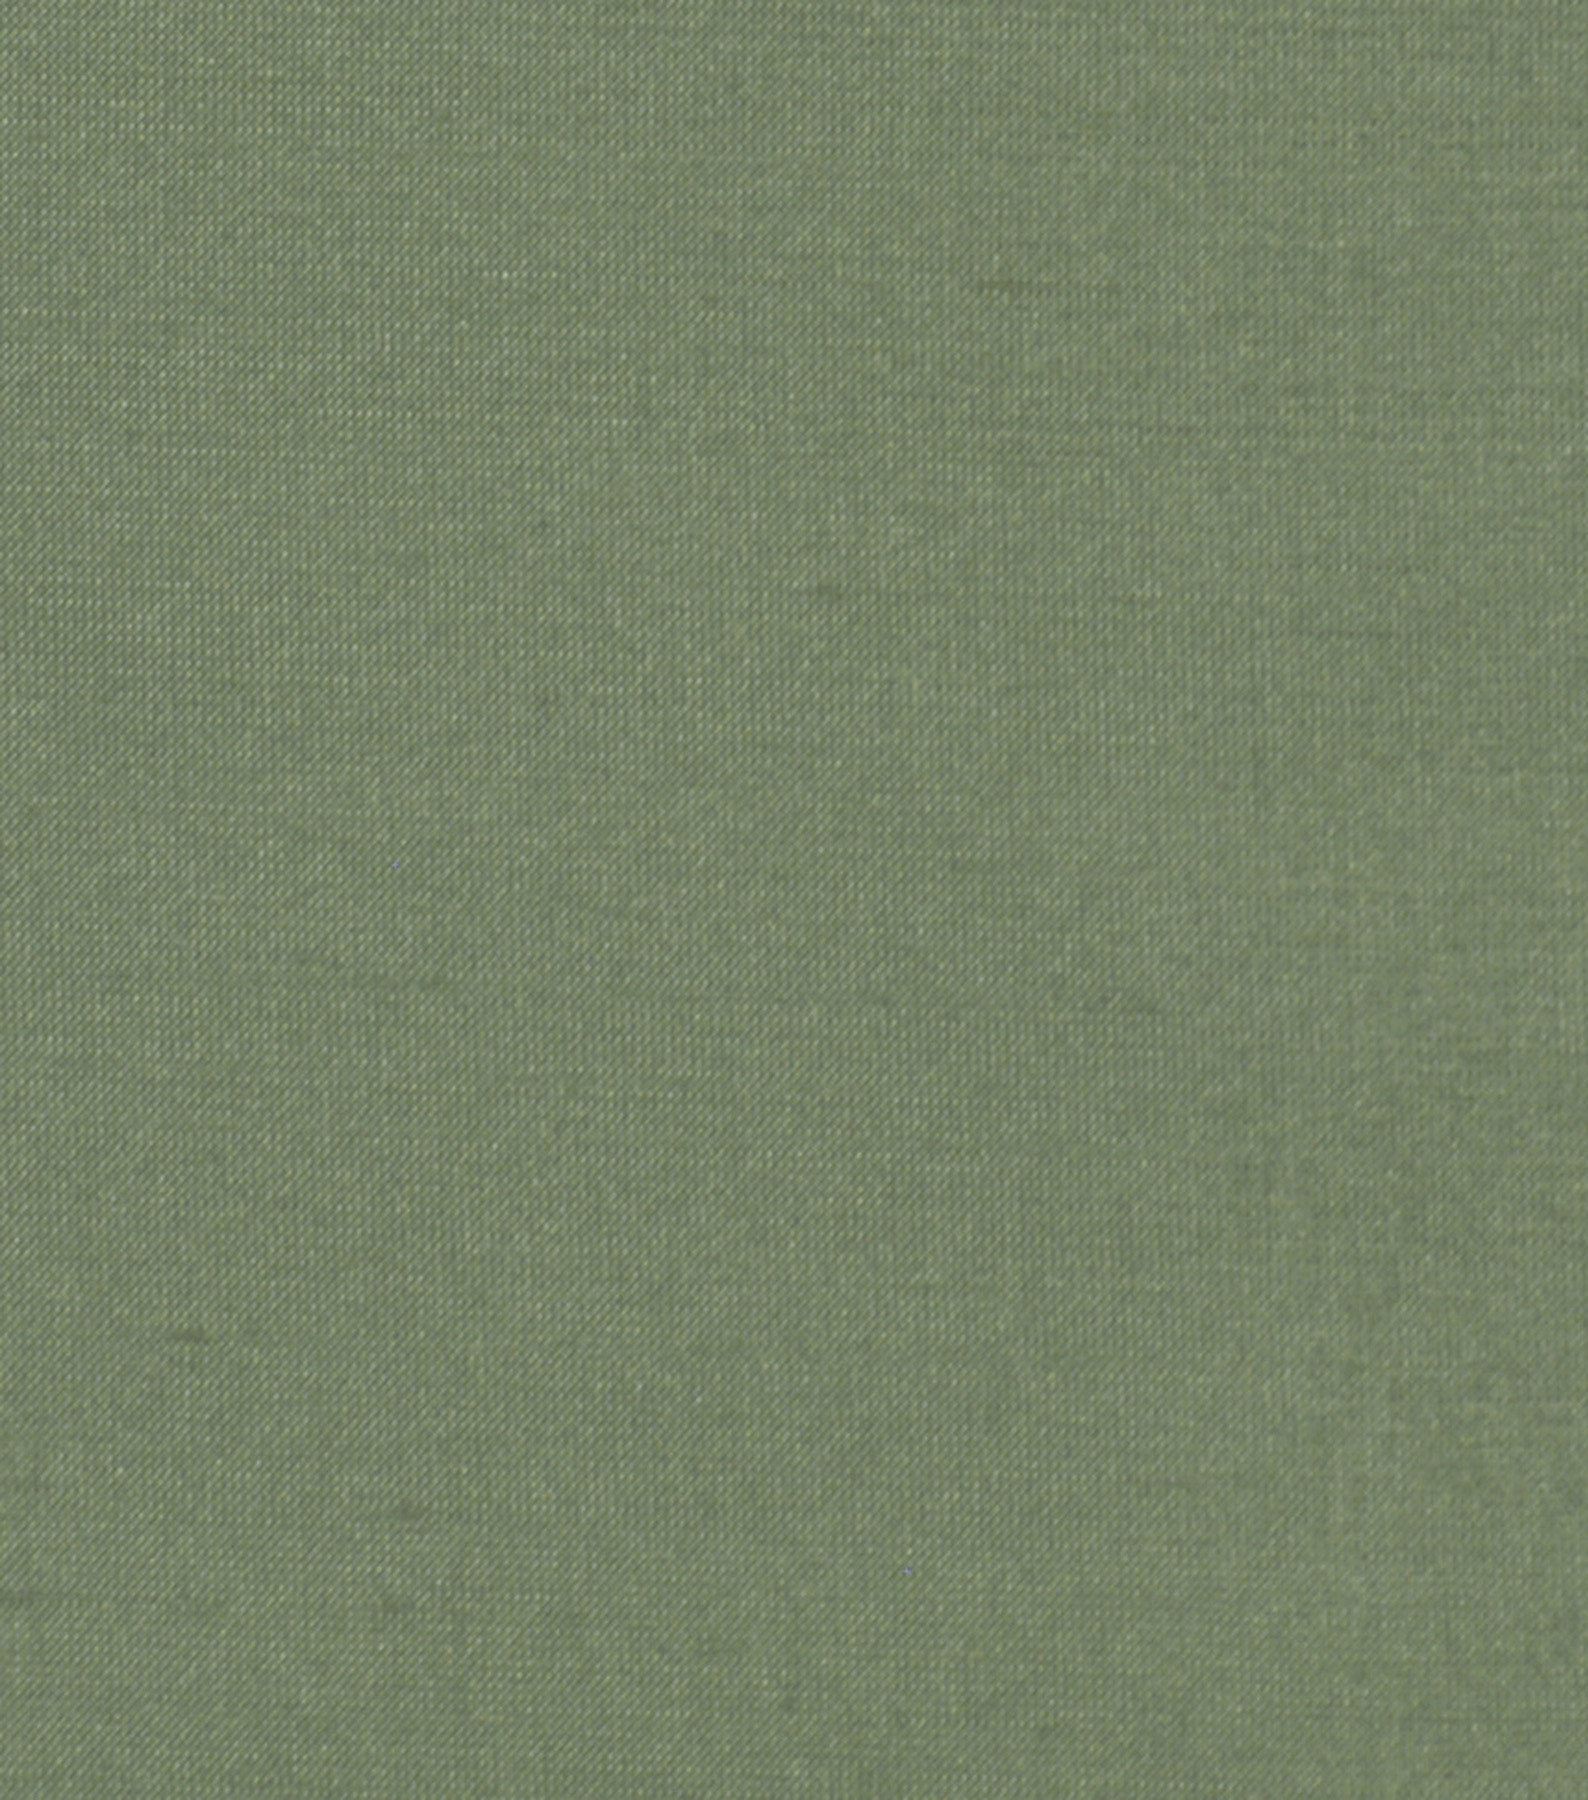 Home Decor 8\u0022x8\u0022 Fabric Swatch-Solid Fabric Signature Series Kalin Turquoise